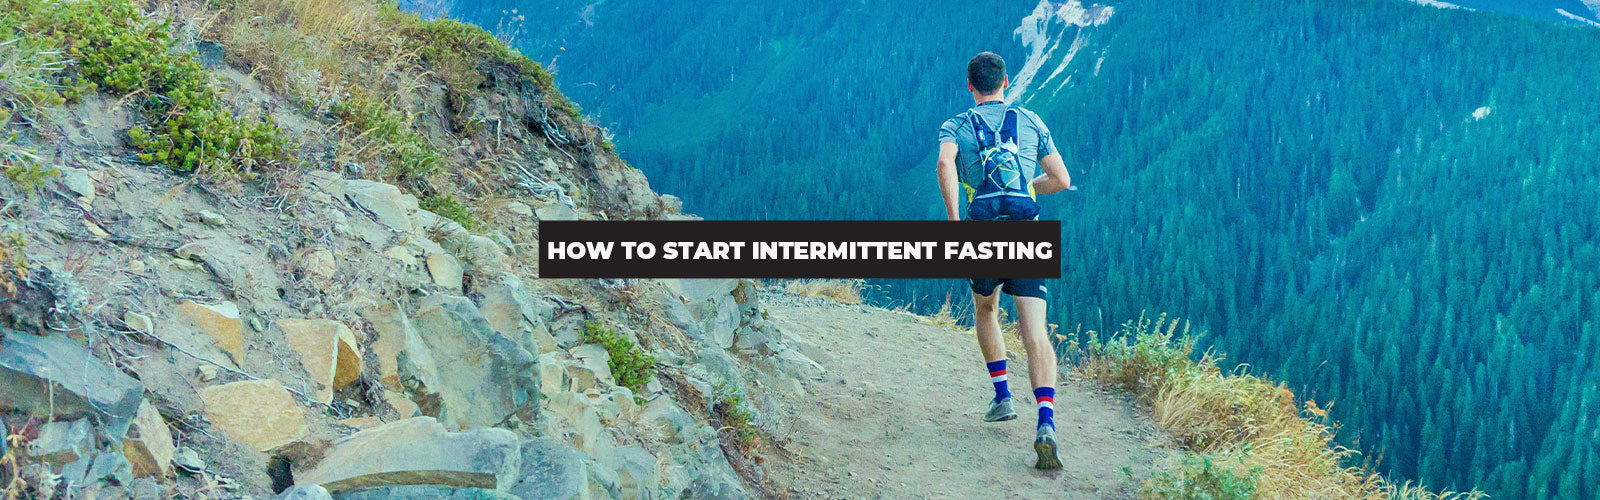 How to Start Intermittent Fasting | Everything You Need to Know